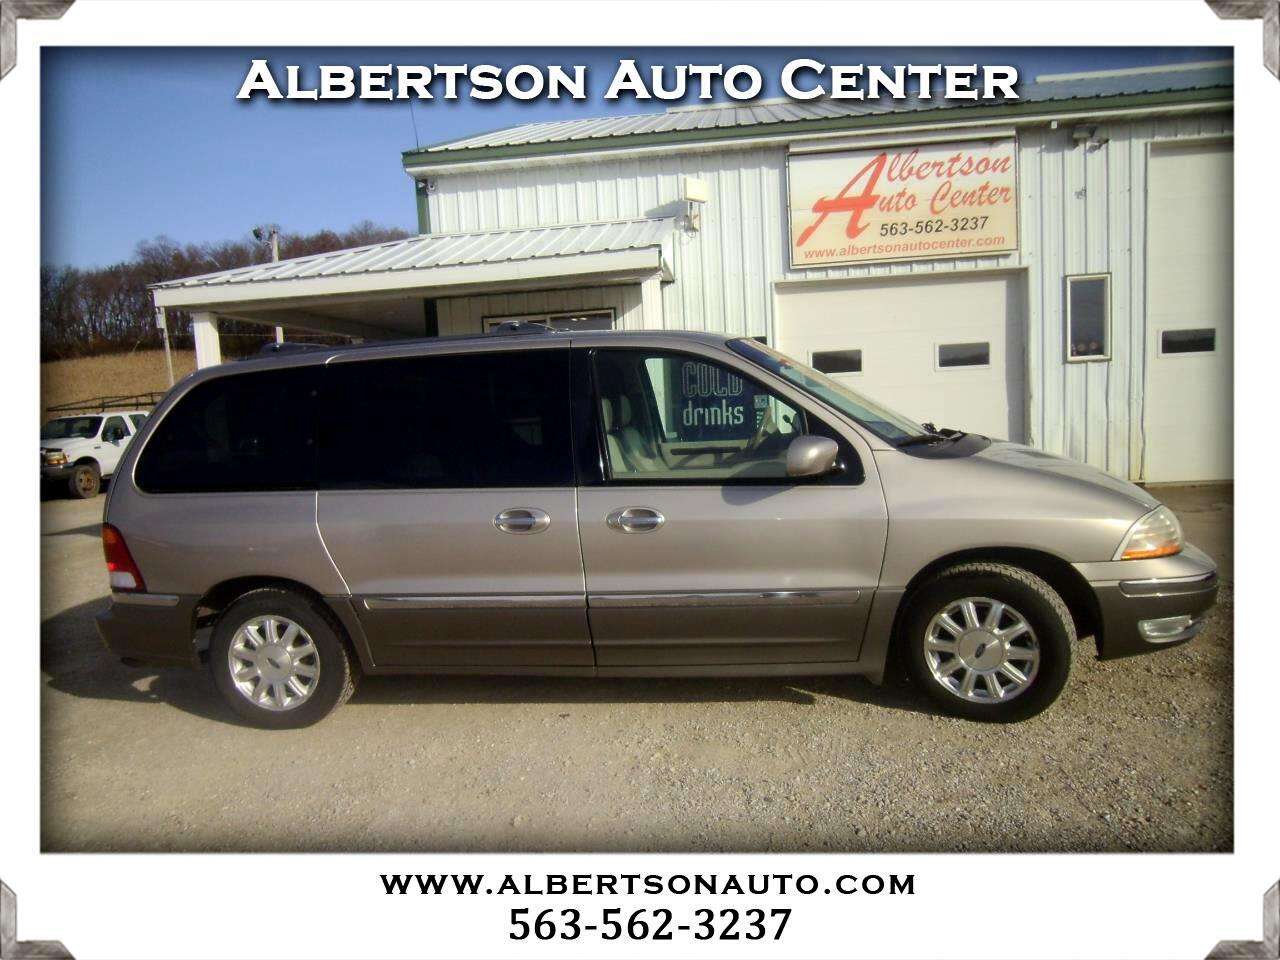 Used Cars For Sale Spillville Ia 52168 Albertson Auto Center 2003 Ford Windstar Sel 2000